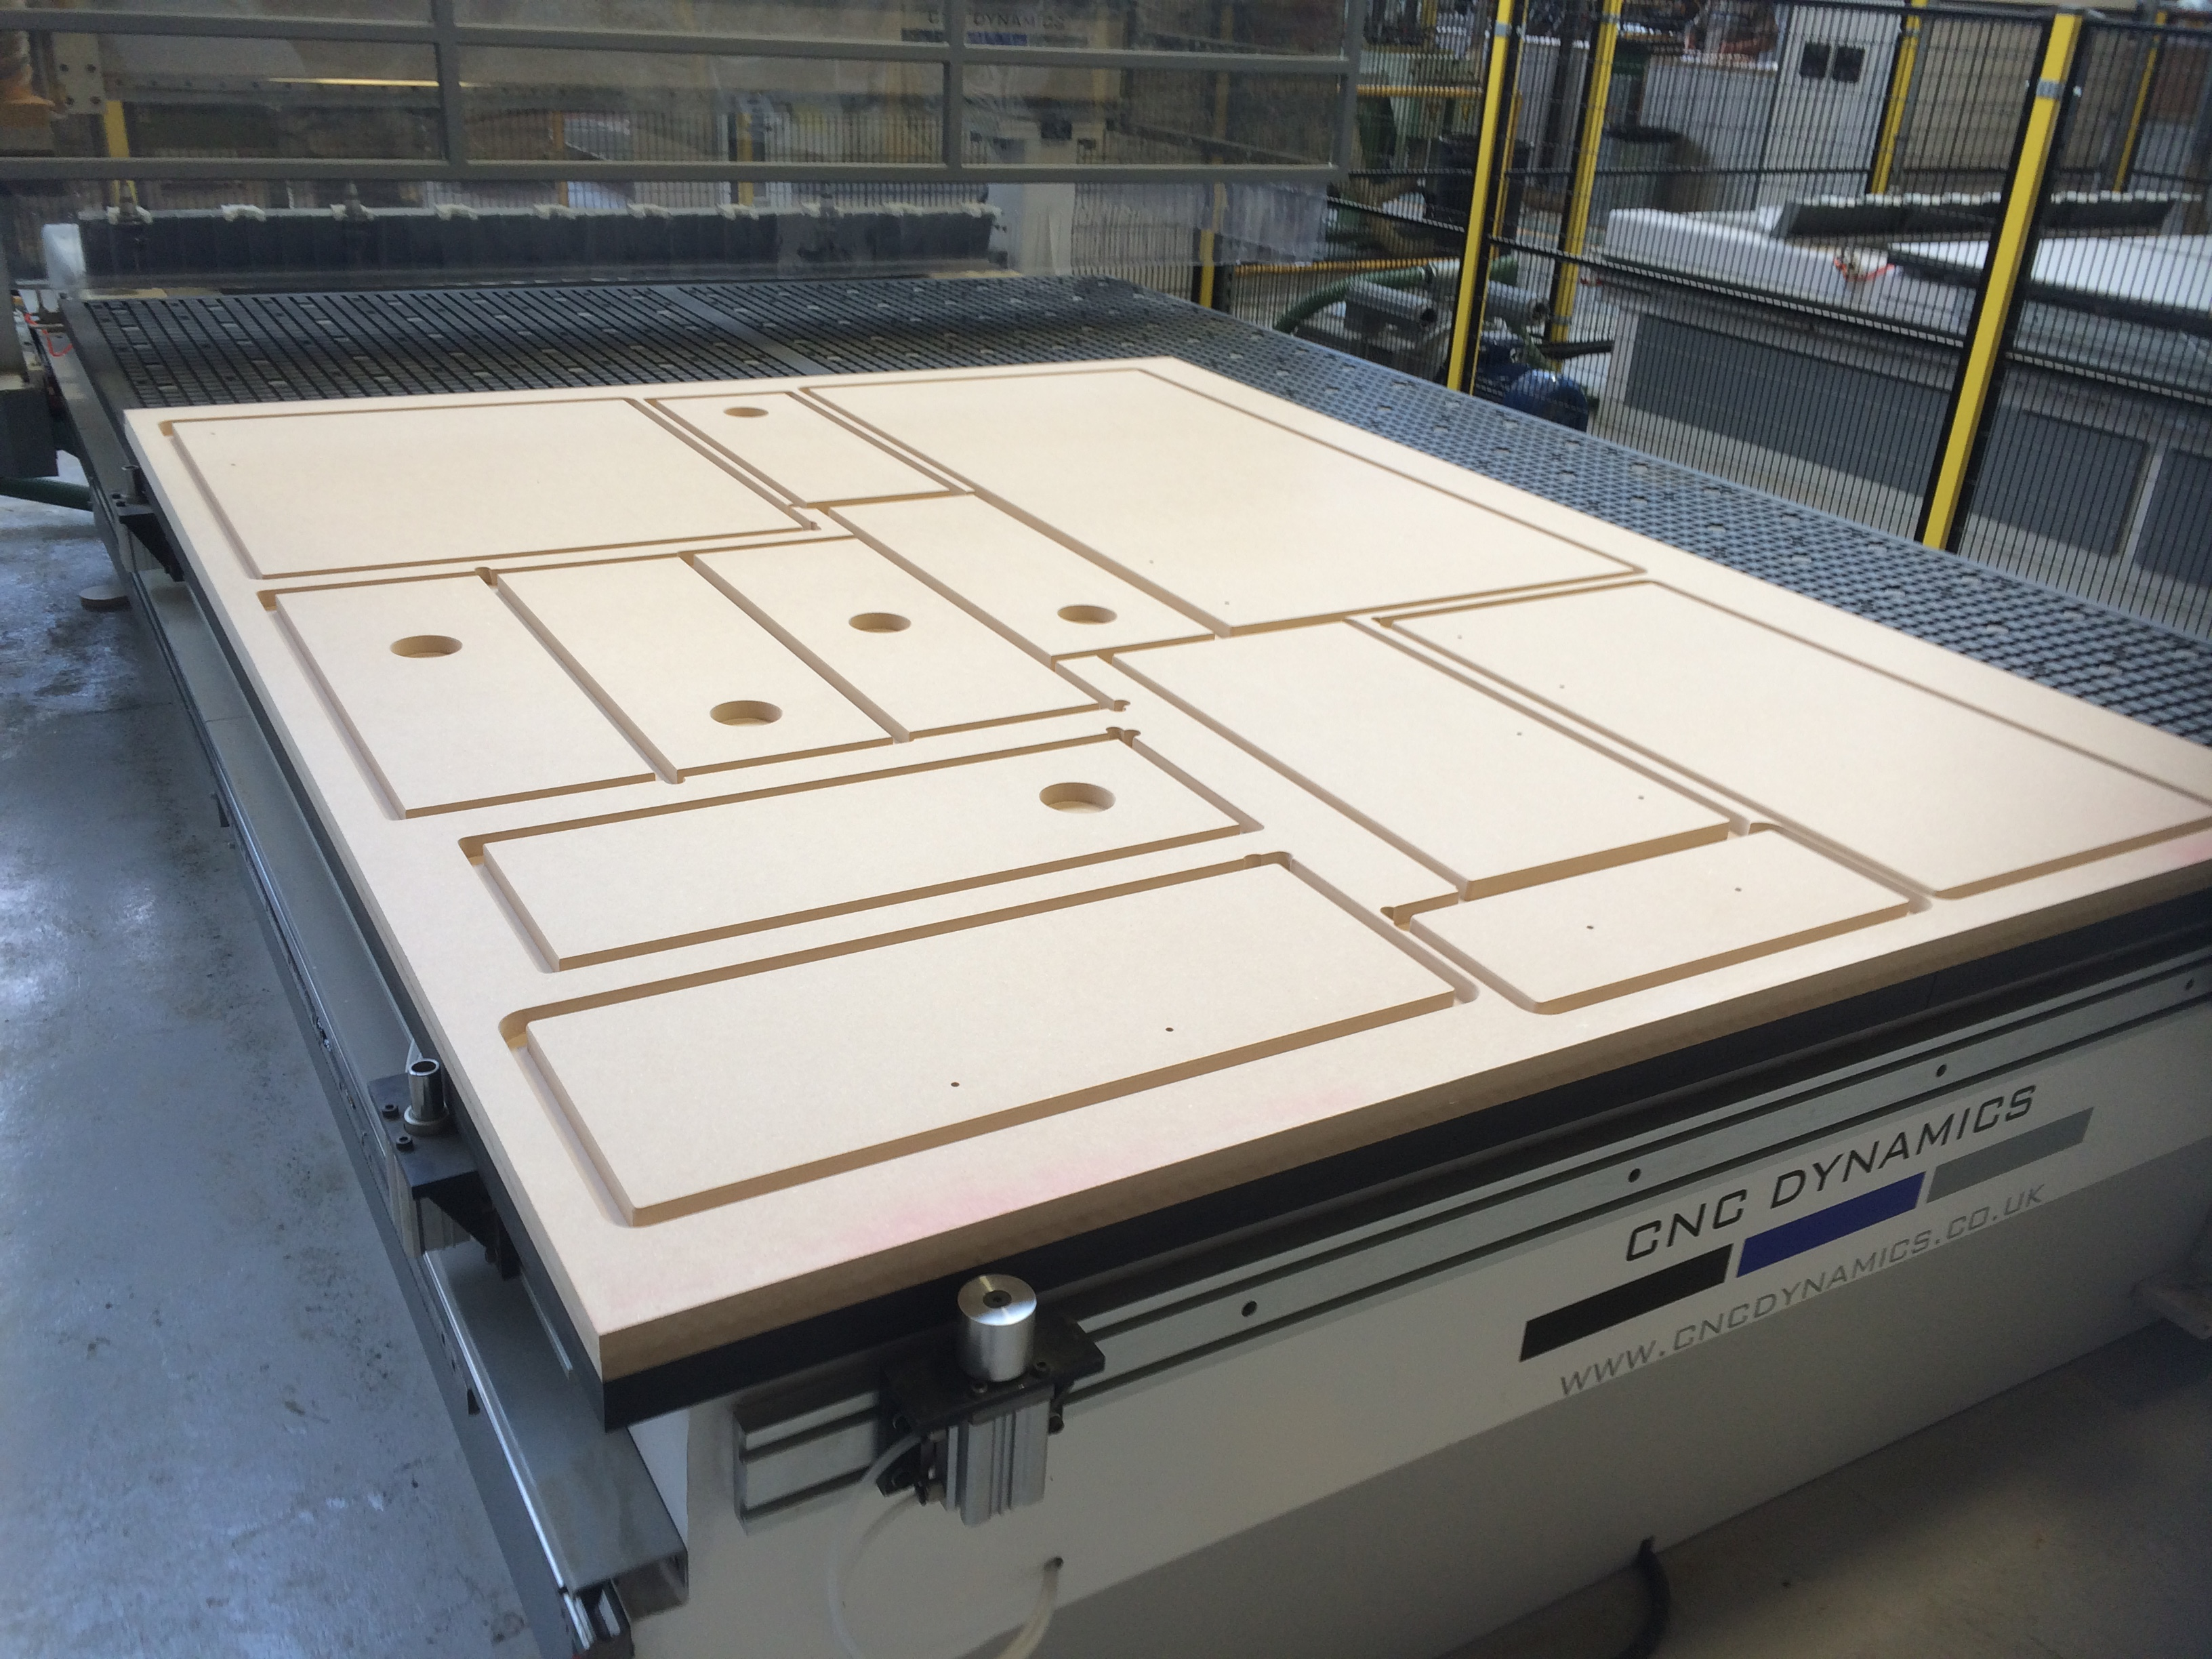 Cnc Dynamics 3020 Heavy Duty Industrial Cnc Routers